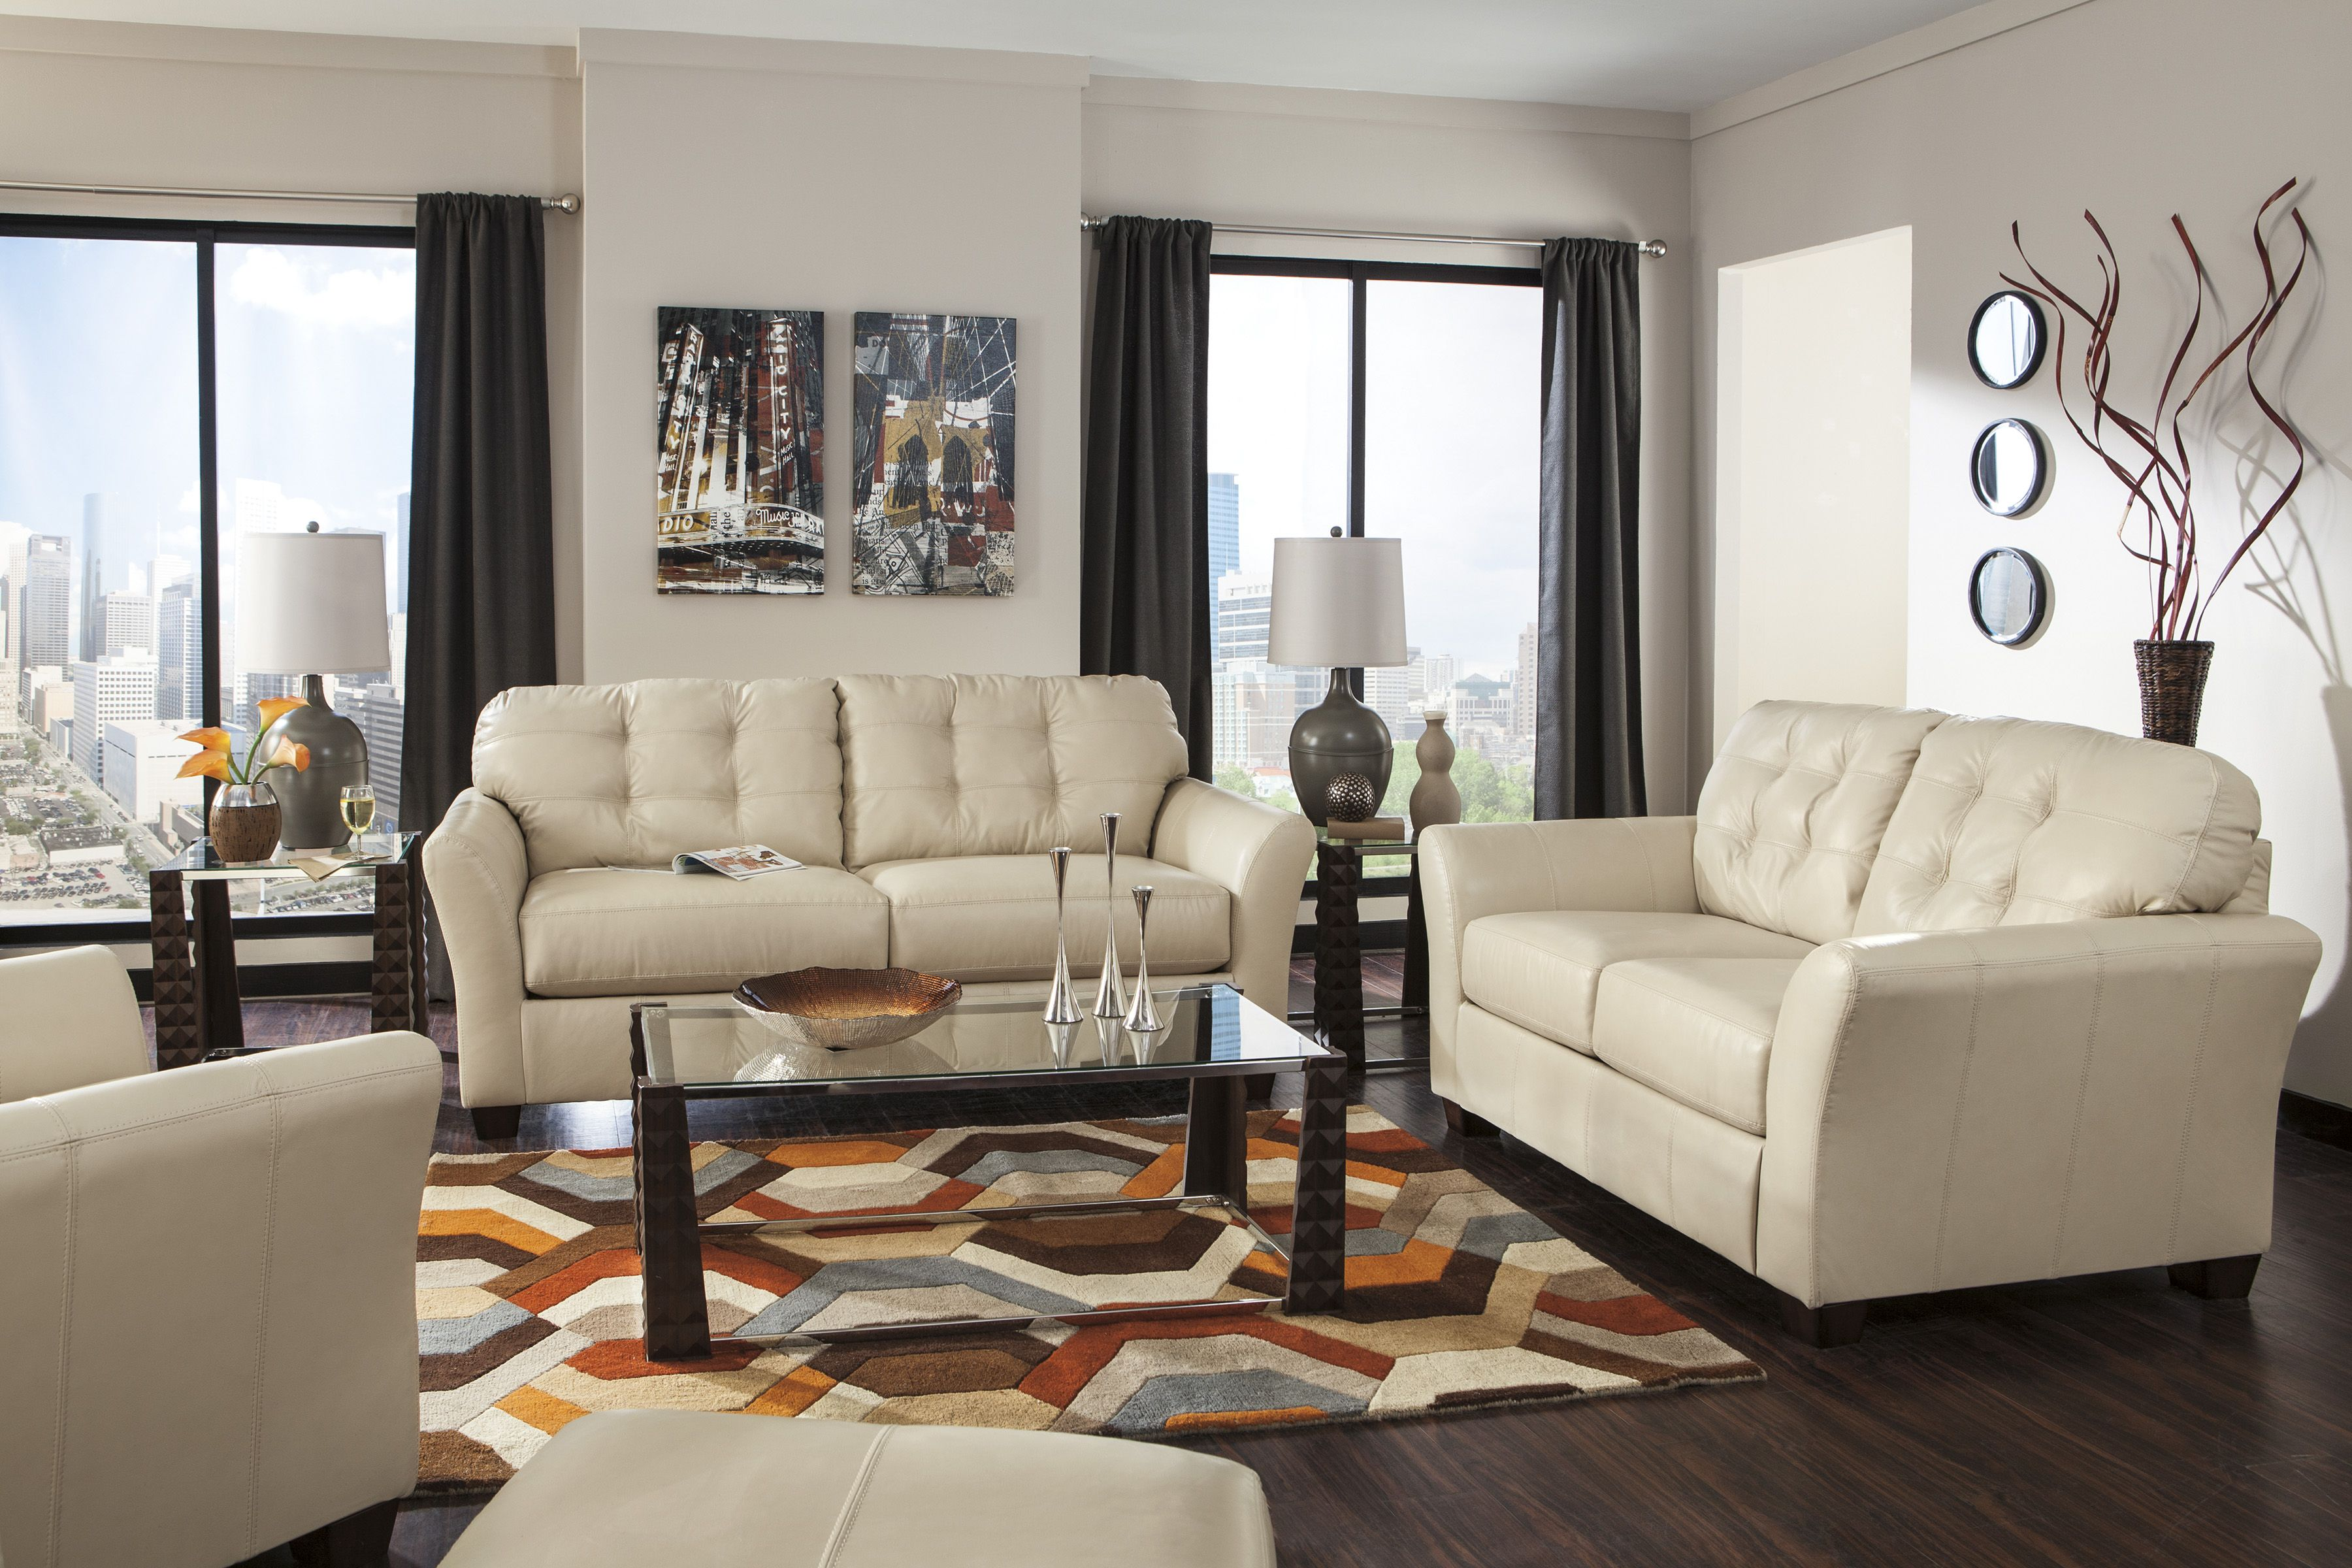 Ashley Furniture 99802 Santiago Cream Leather Set Click On Pin For High Res Image Furniture Sofa Living Room